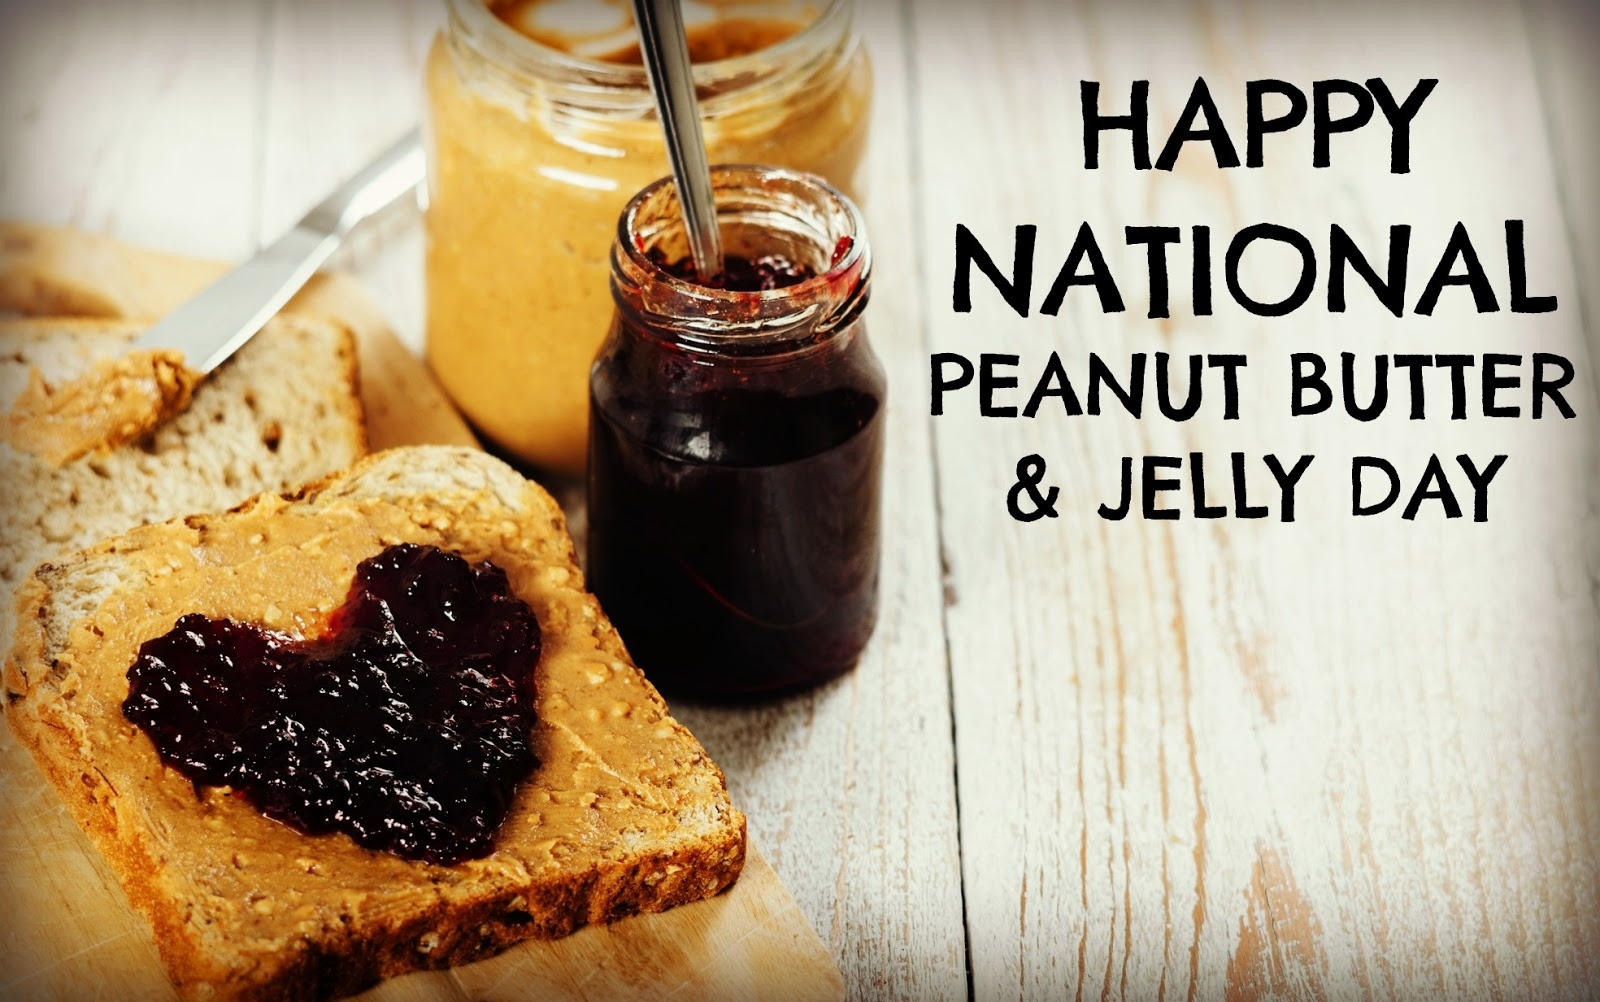 National Peanut Butter And Jelly Day 2019